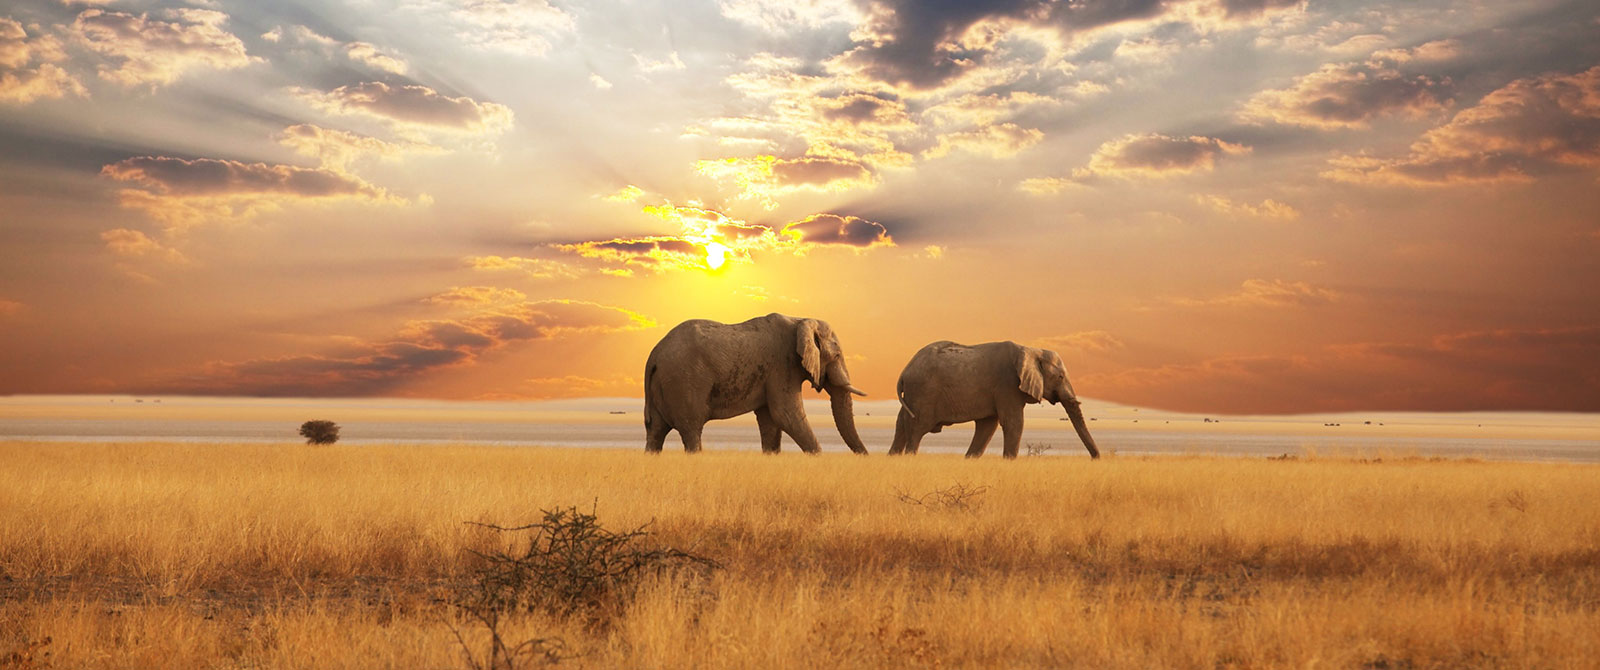 Elephants at Sunset in the Savannah